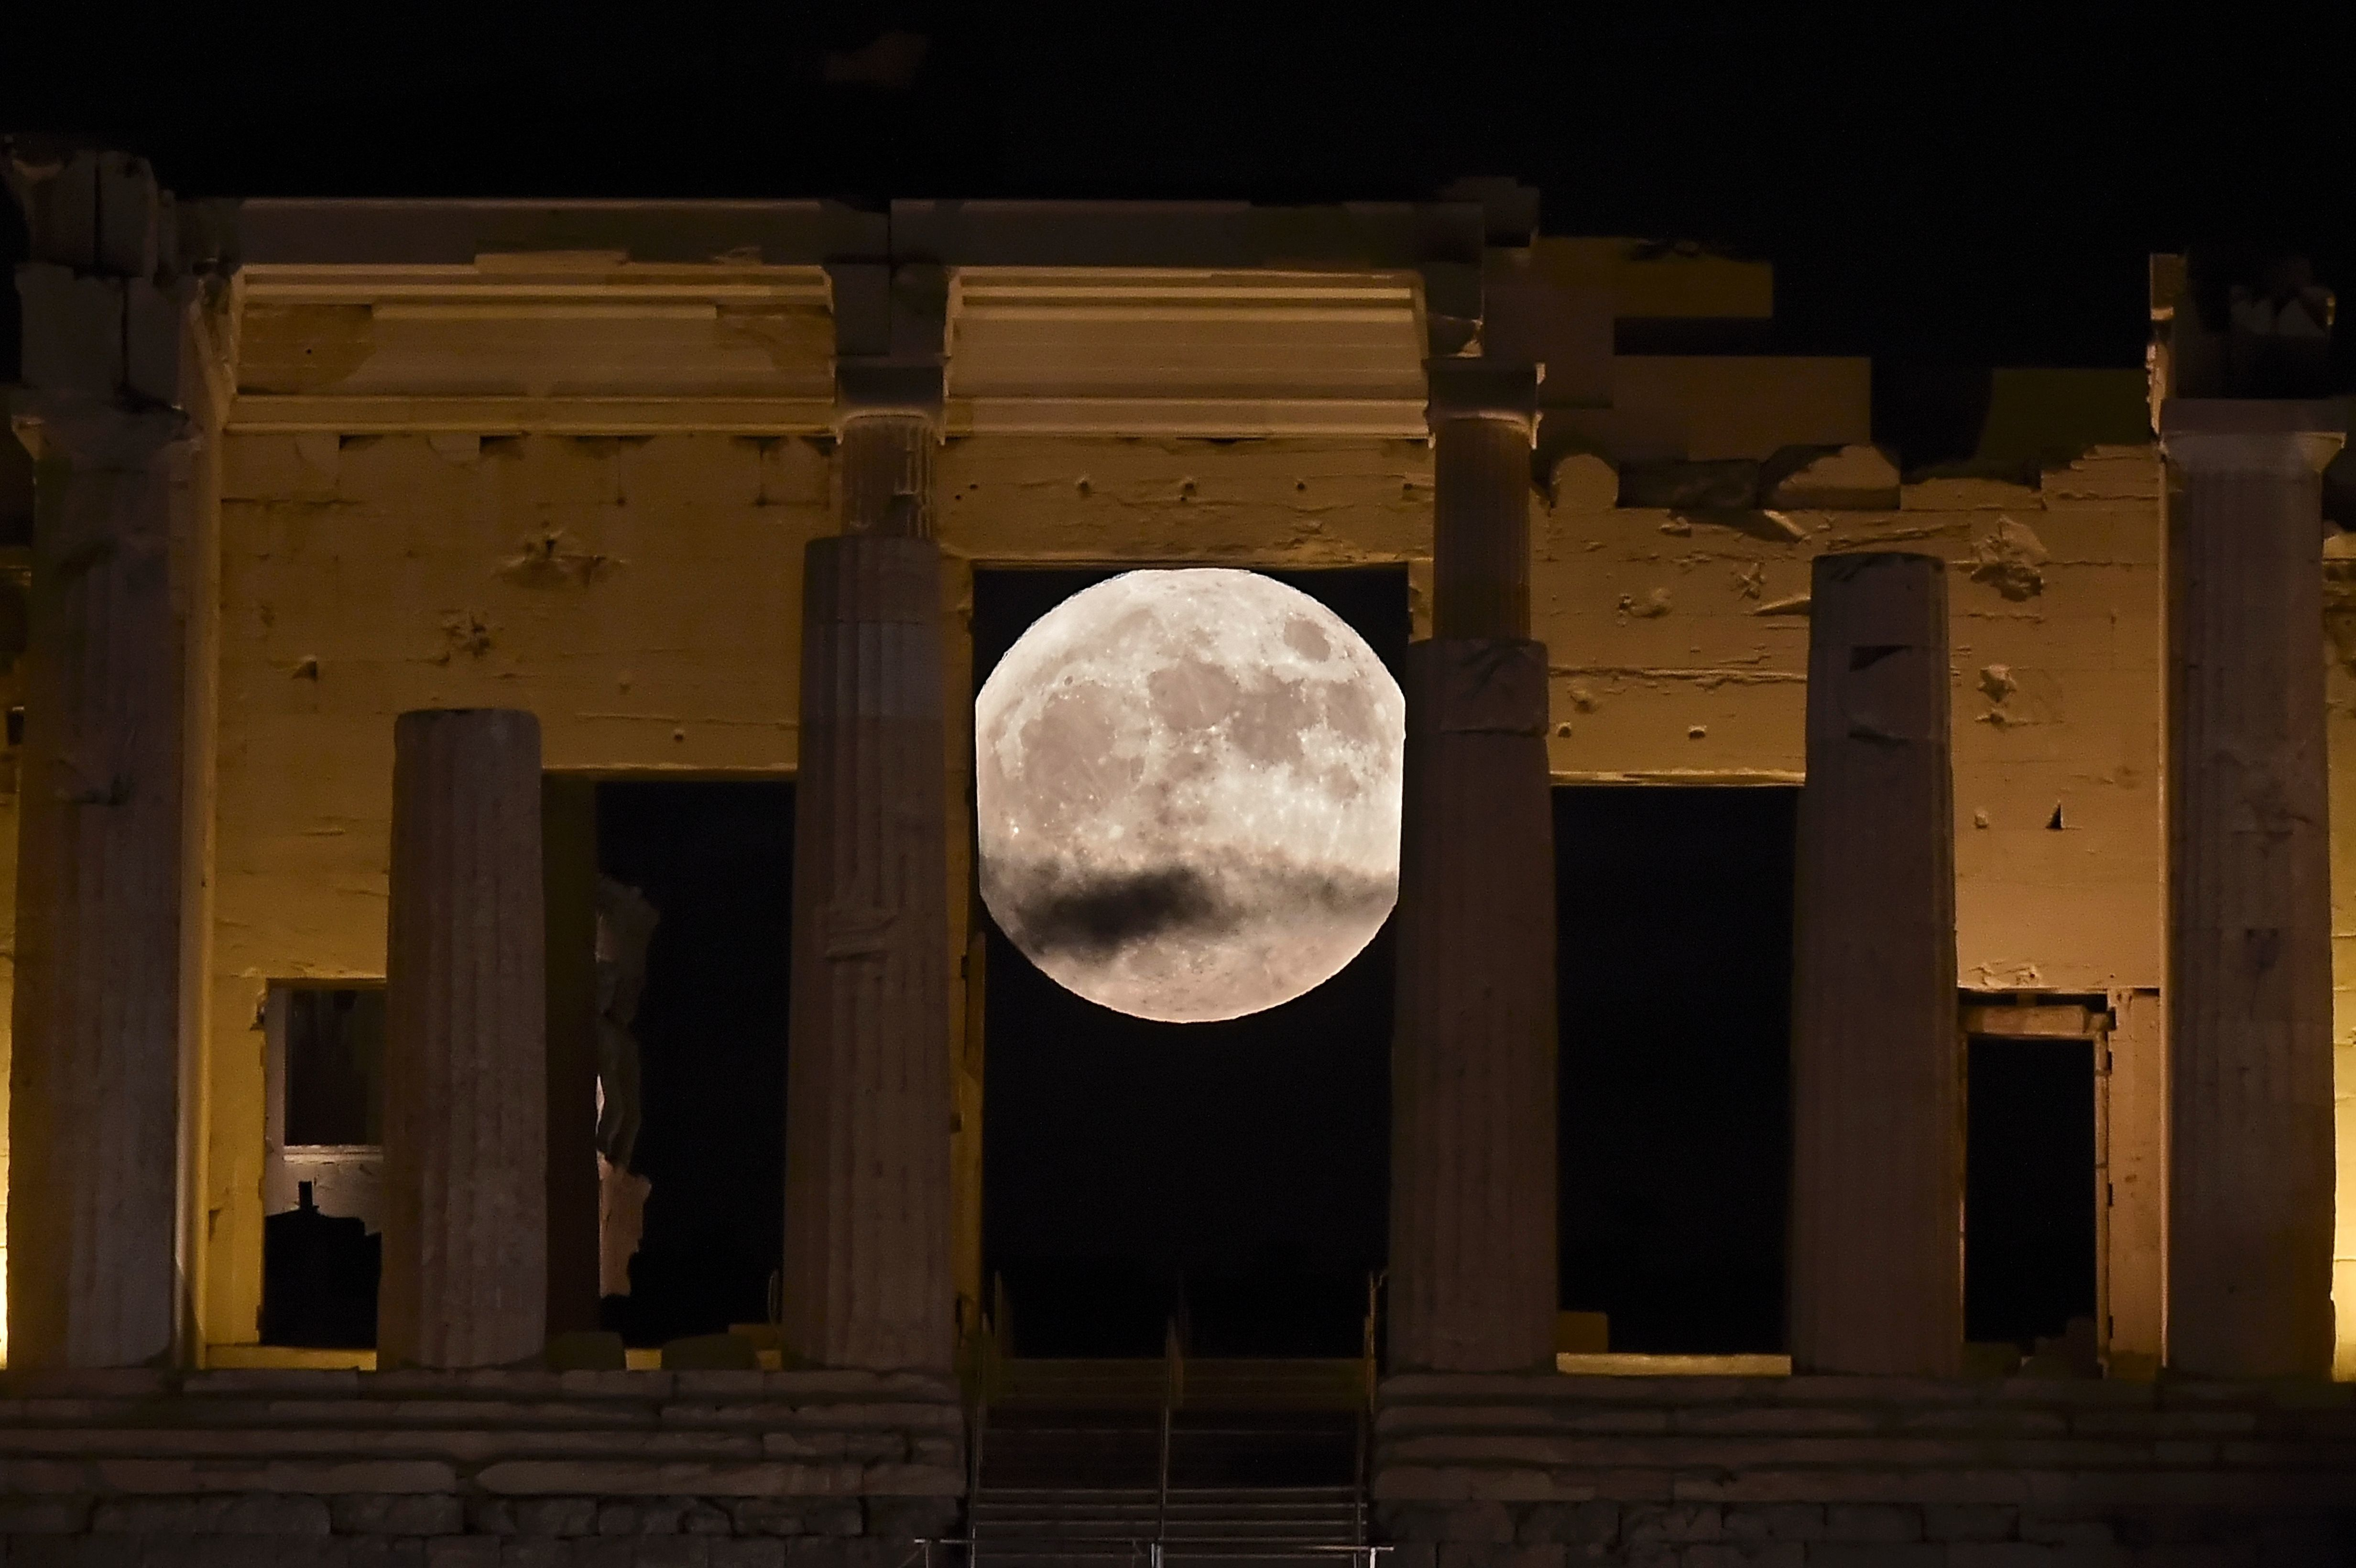 5829face180000f703504040?ops=scalefit_960_noupscale these hilariously bad supermoon photos are tortilla awesome huffpost,Tortilla Moon Meme